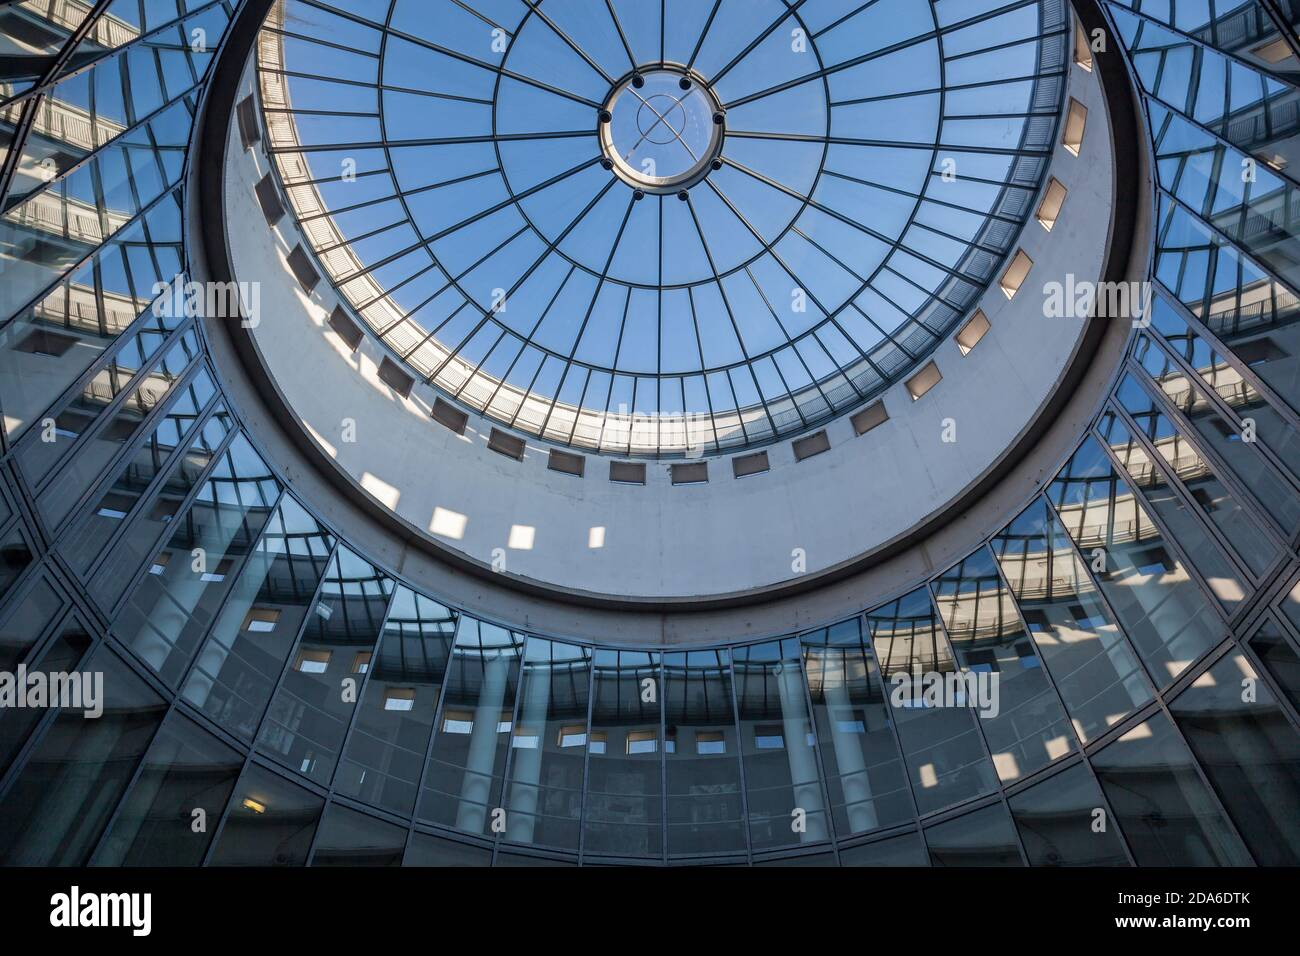 geography / travel, Germany, Hesse, Frankfurt on the Main, the SCHIRN art gallery in of the Bendergass, Additional-Rights-Clearance-Info-Not-Available Stock Photo